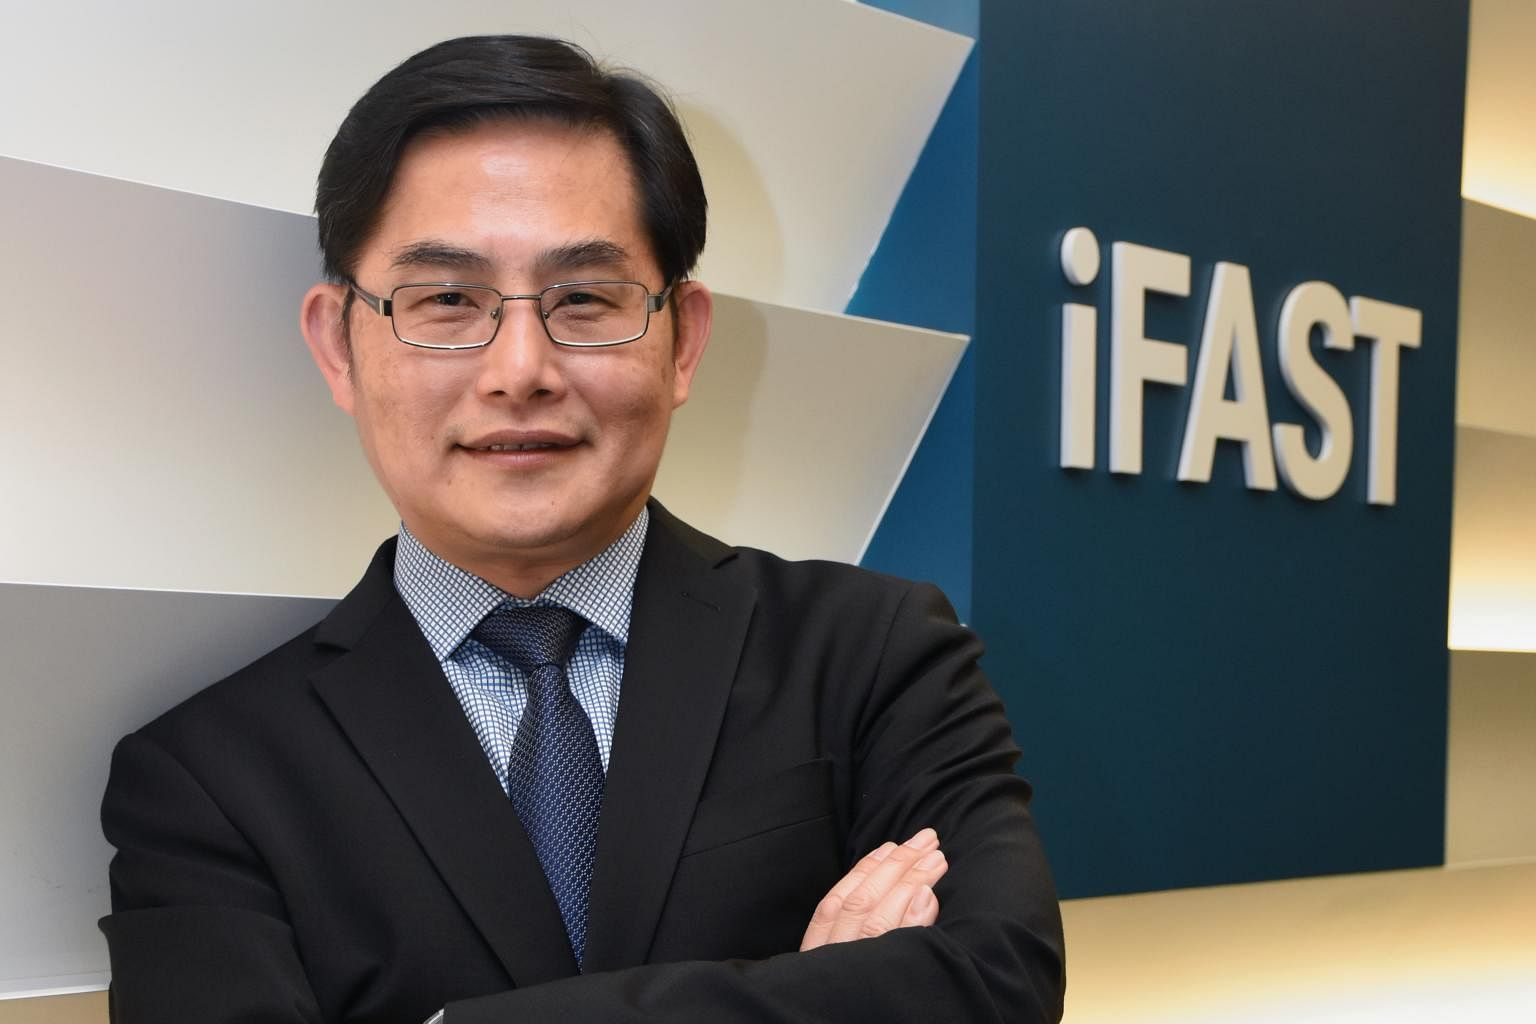 iFast leads Chinese partners with bid for Singapore digital wholesale bank licence, Banking News & Top Stories - The Straits Times